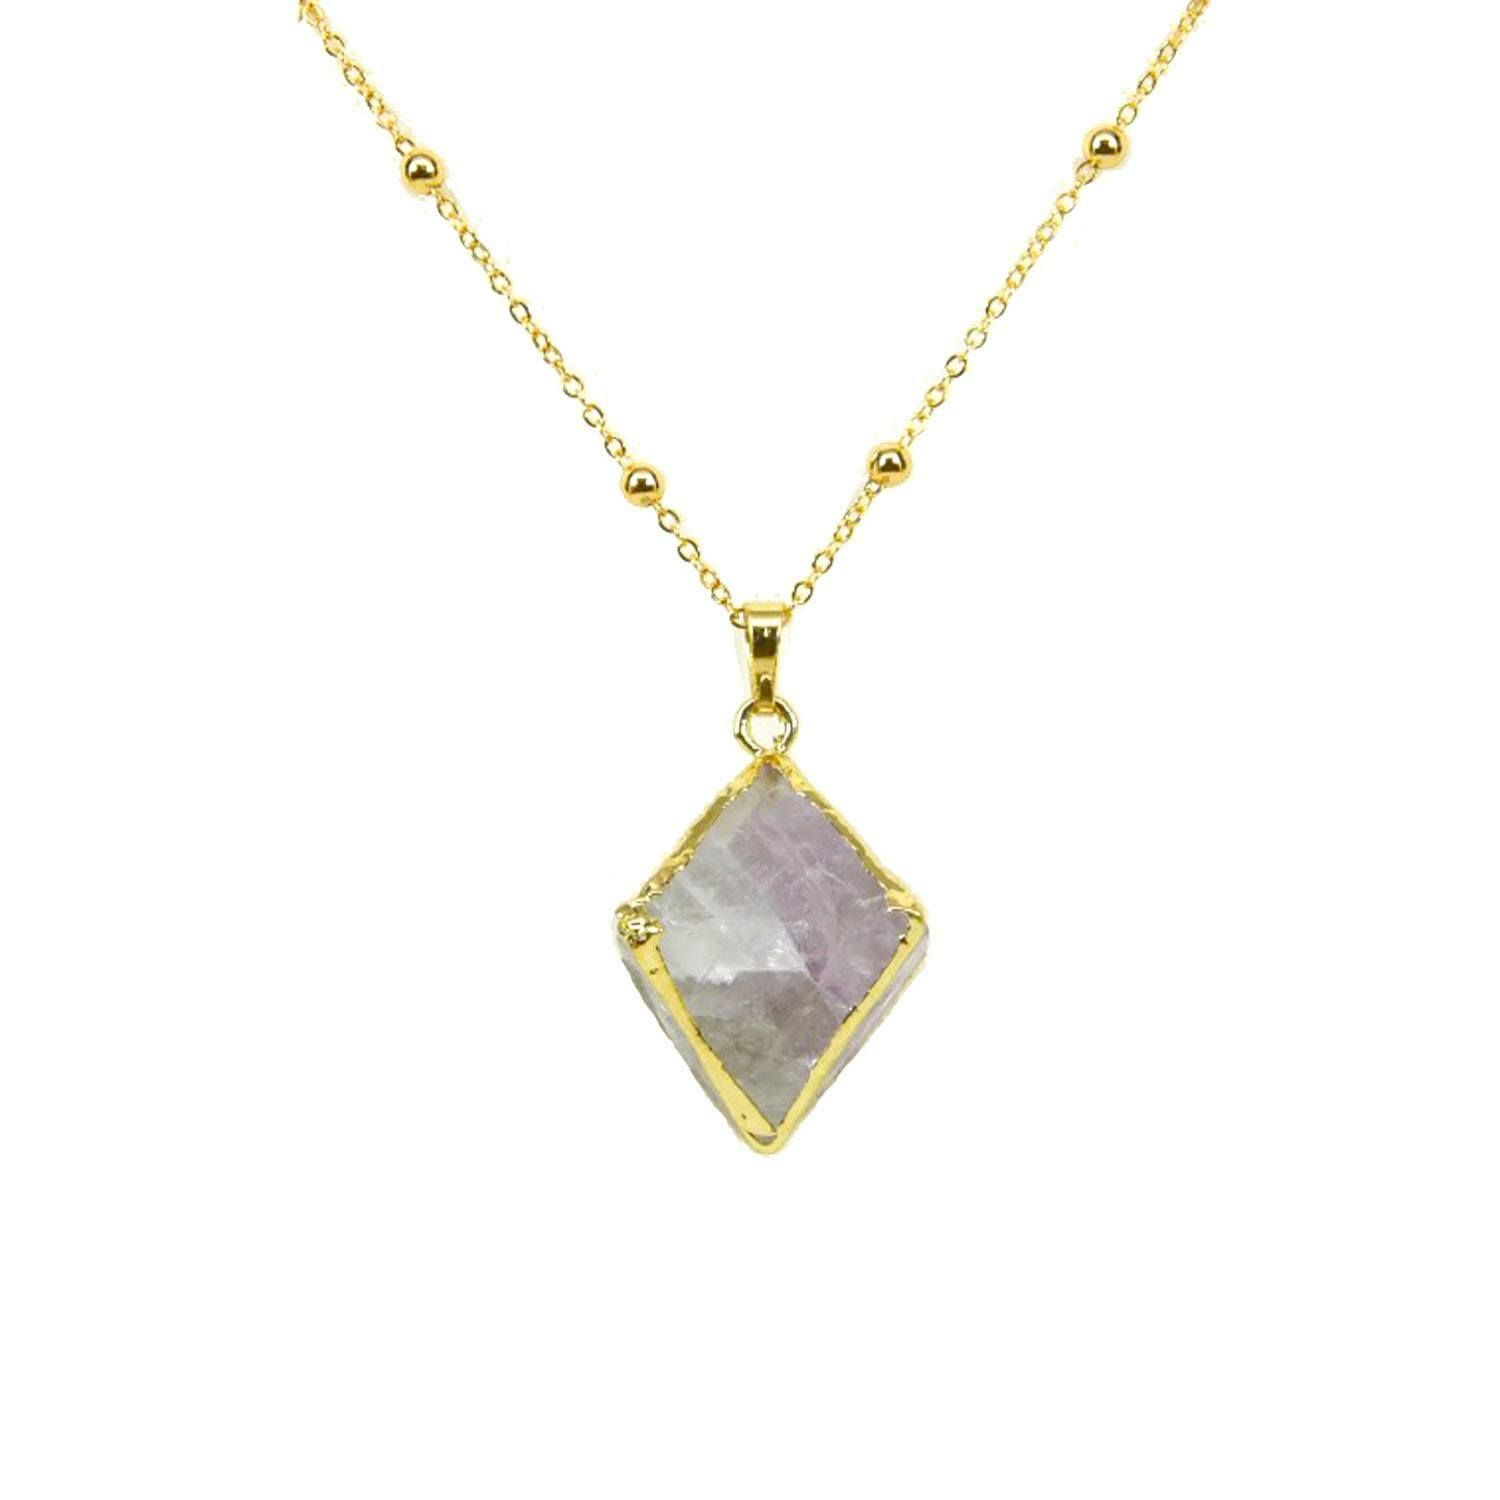 Flourite pyramid necklace products and necklaces